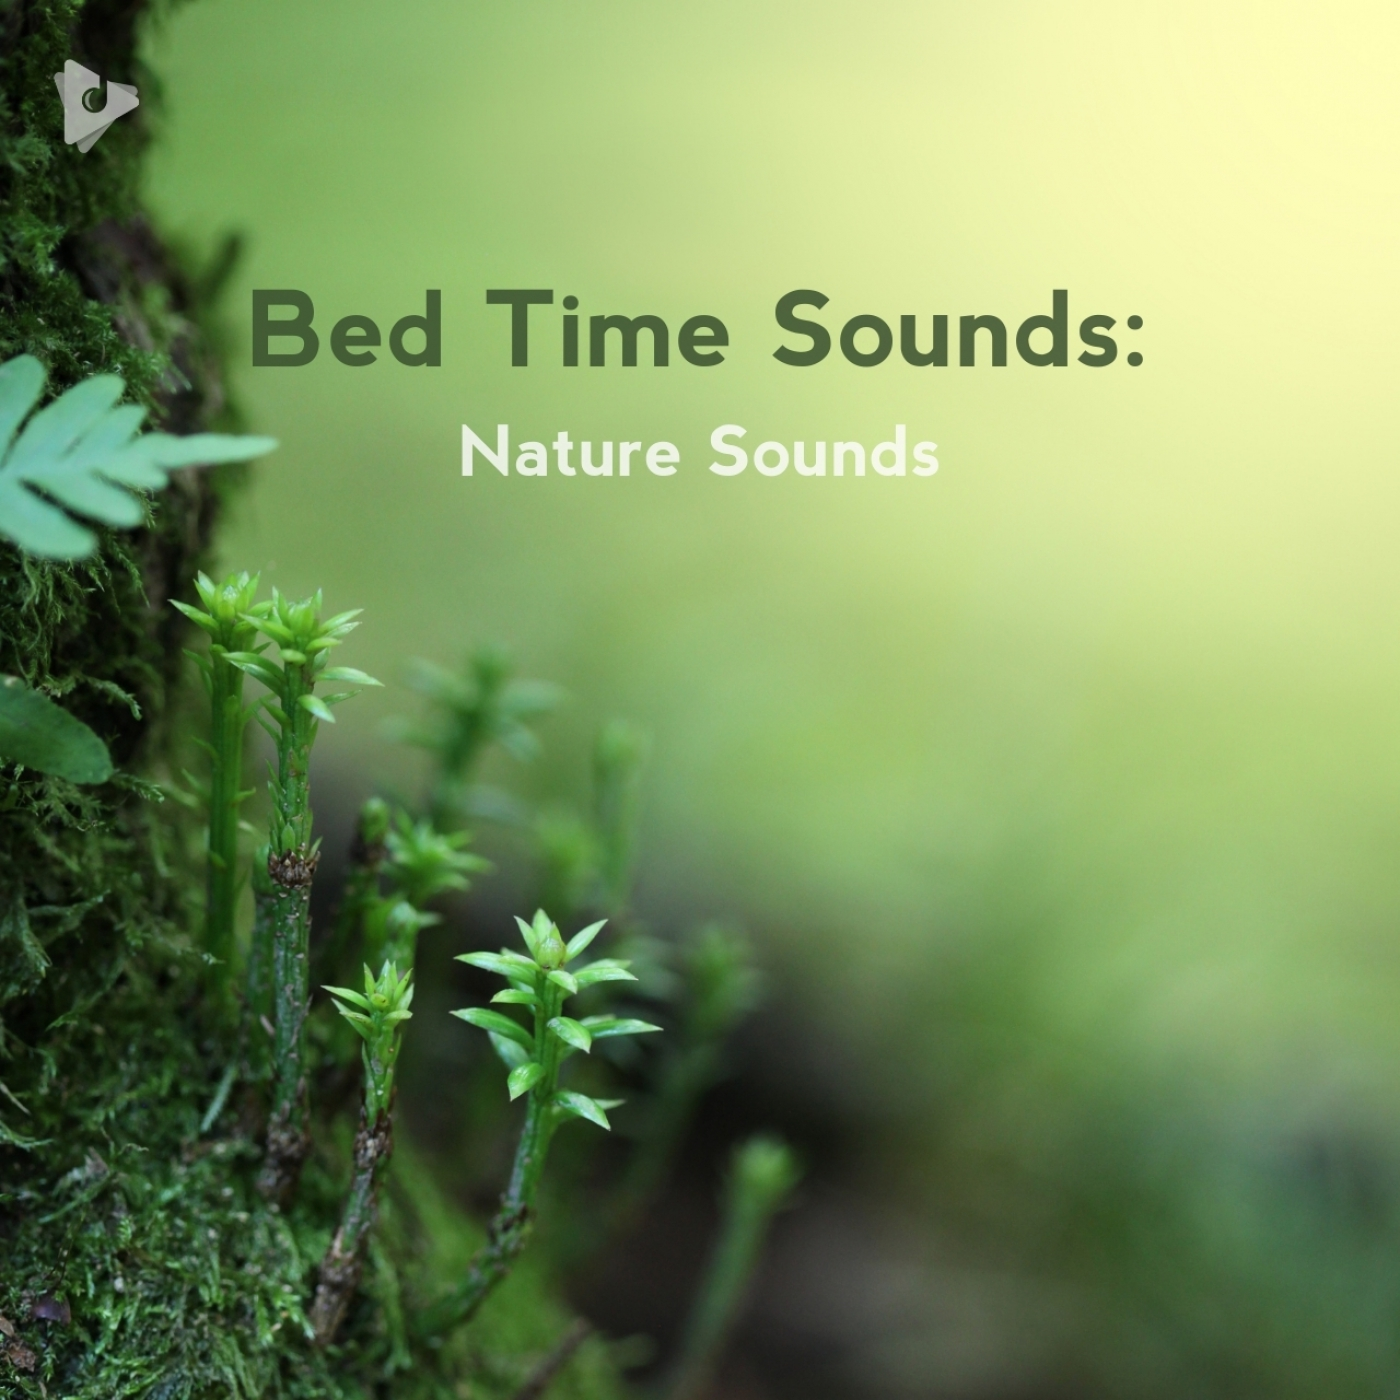 Bed Time Sounds: Nature Sounds